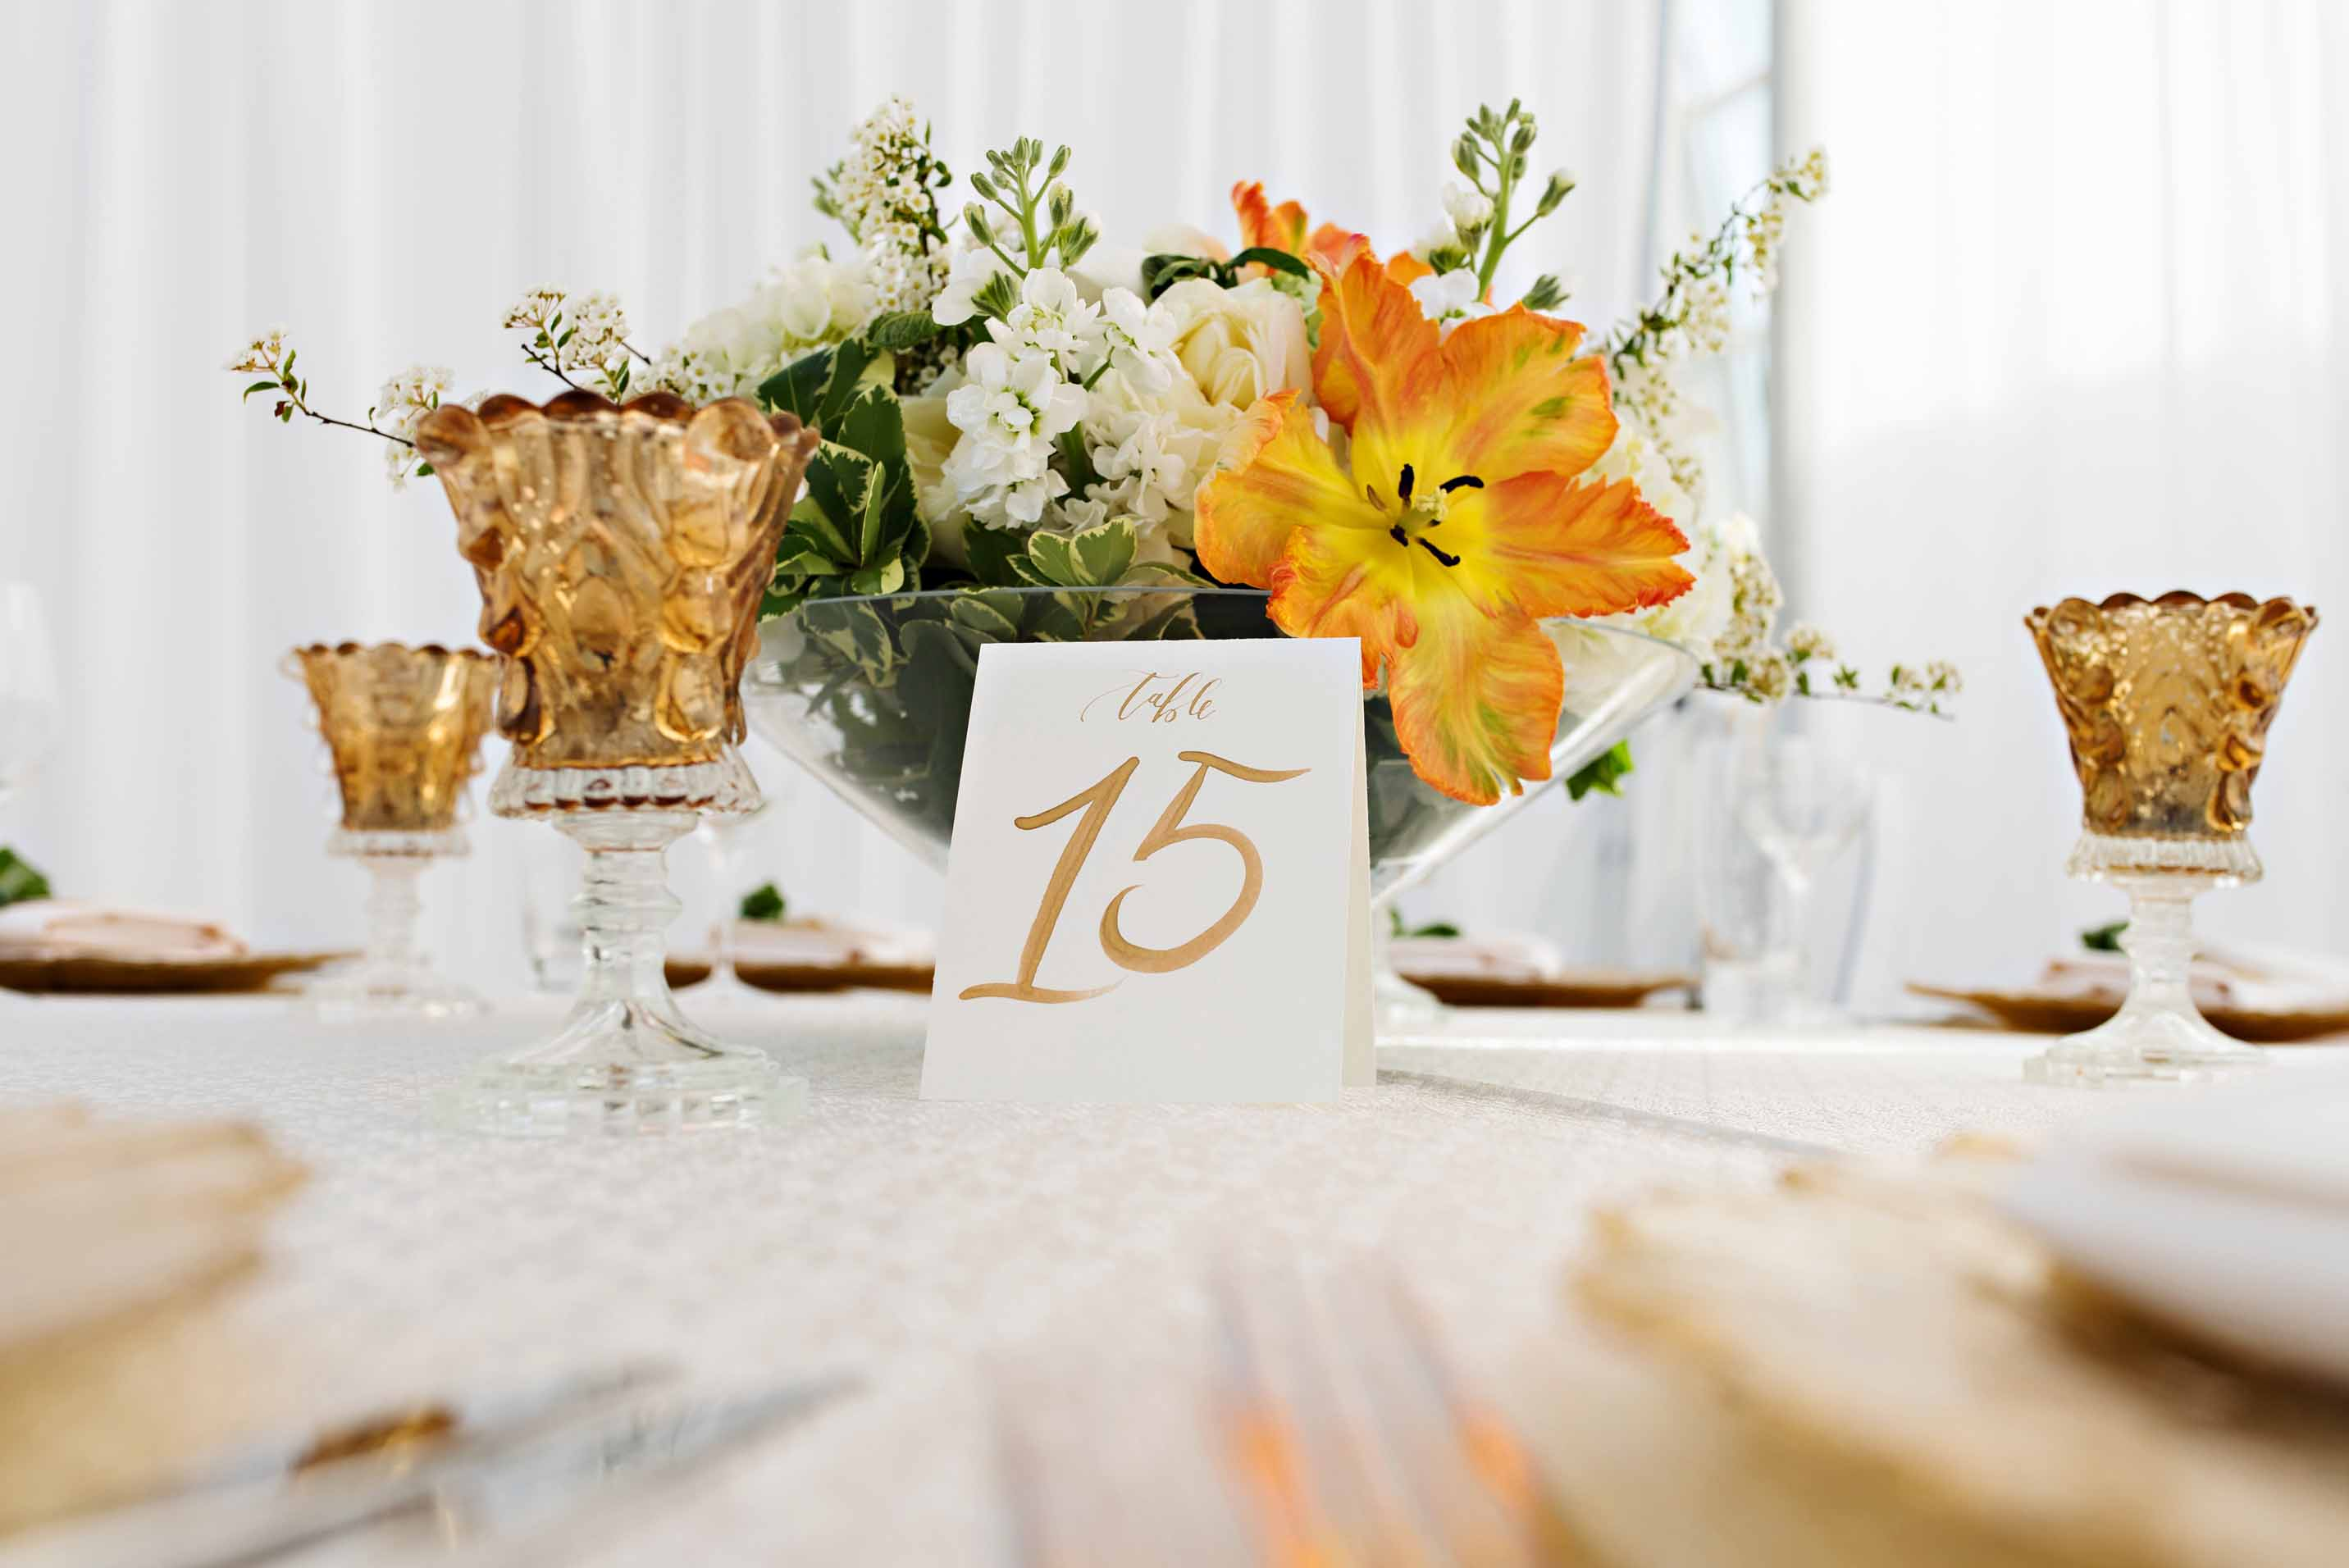 Low centerpiece with large orange parrot tulips, and a gold votive candle holder